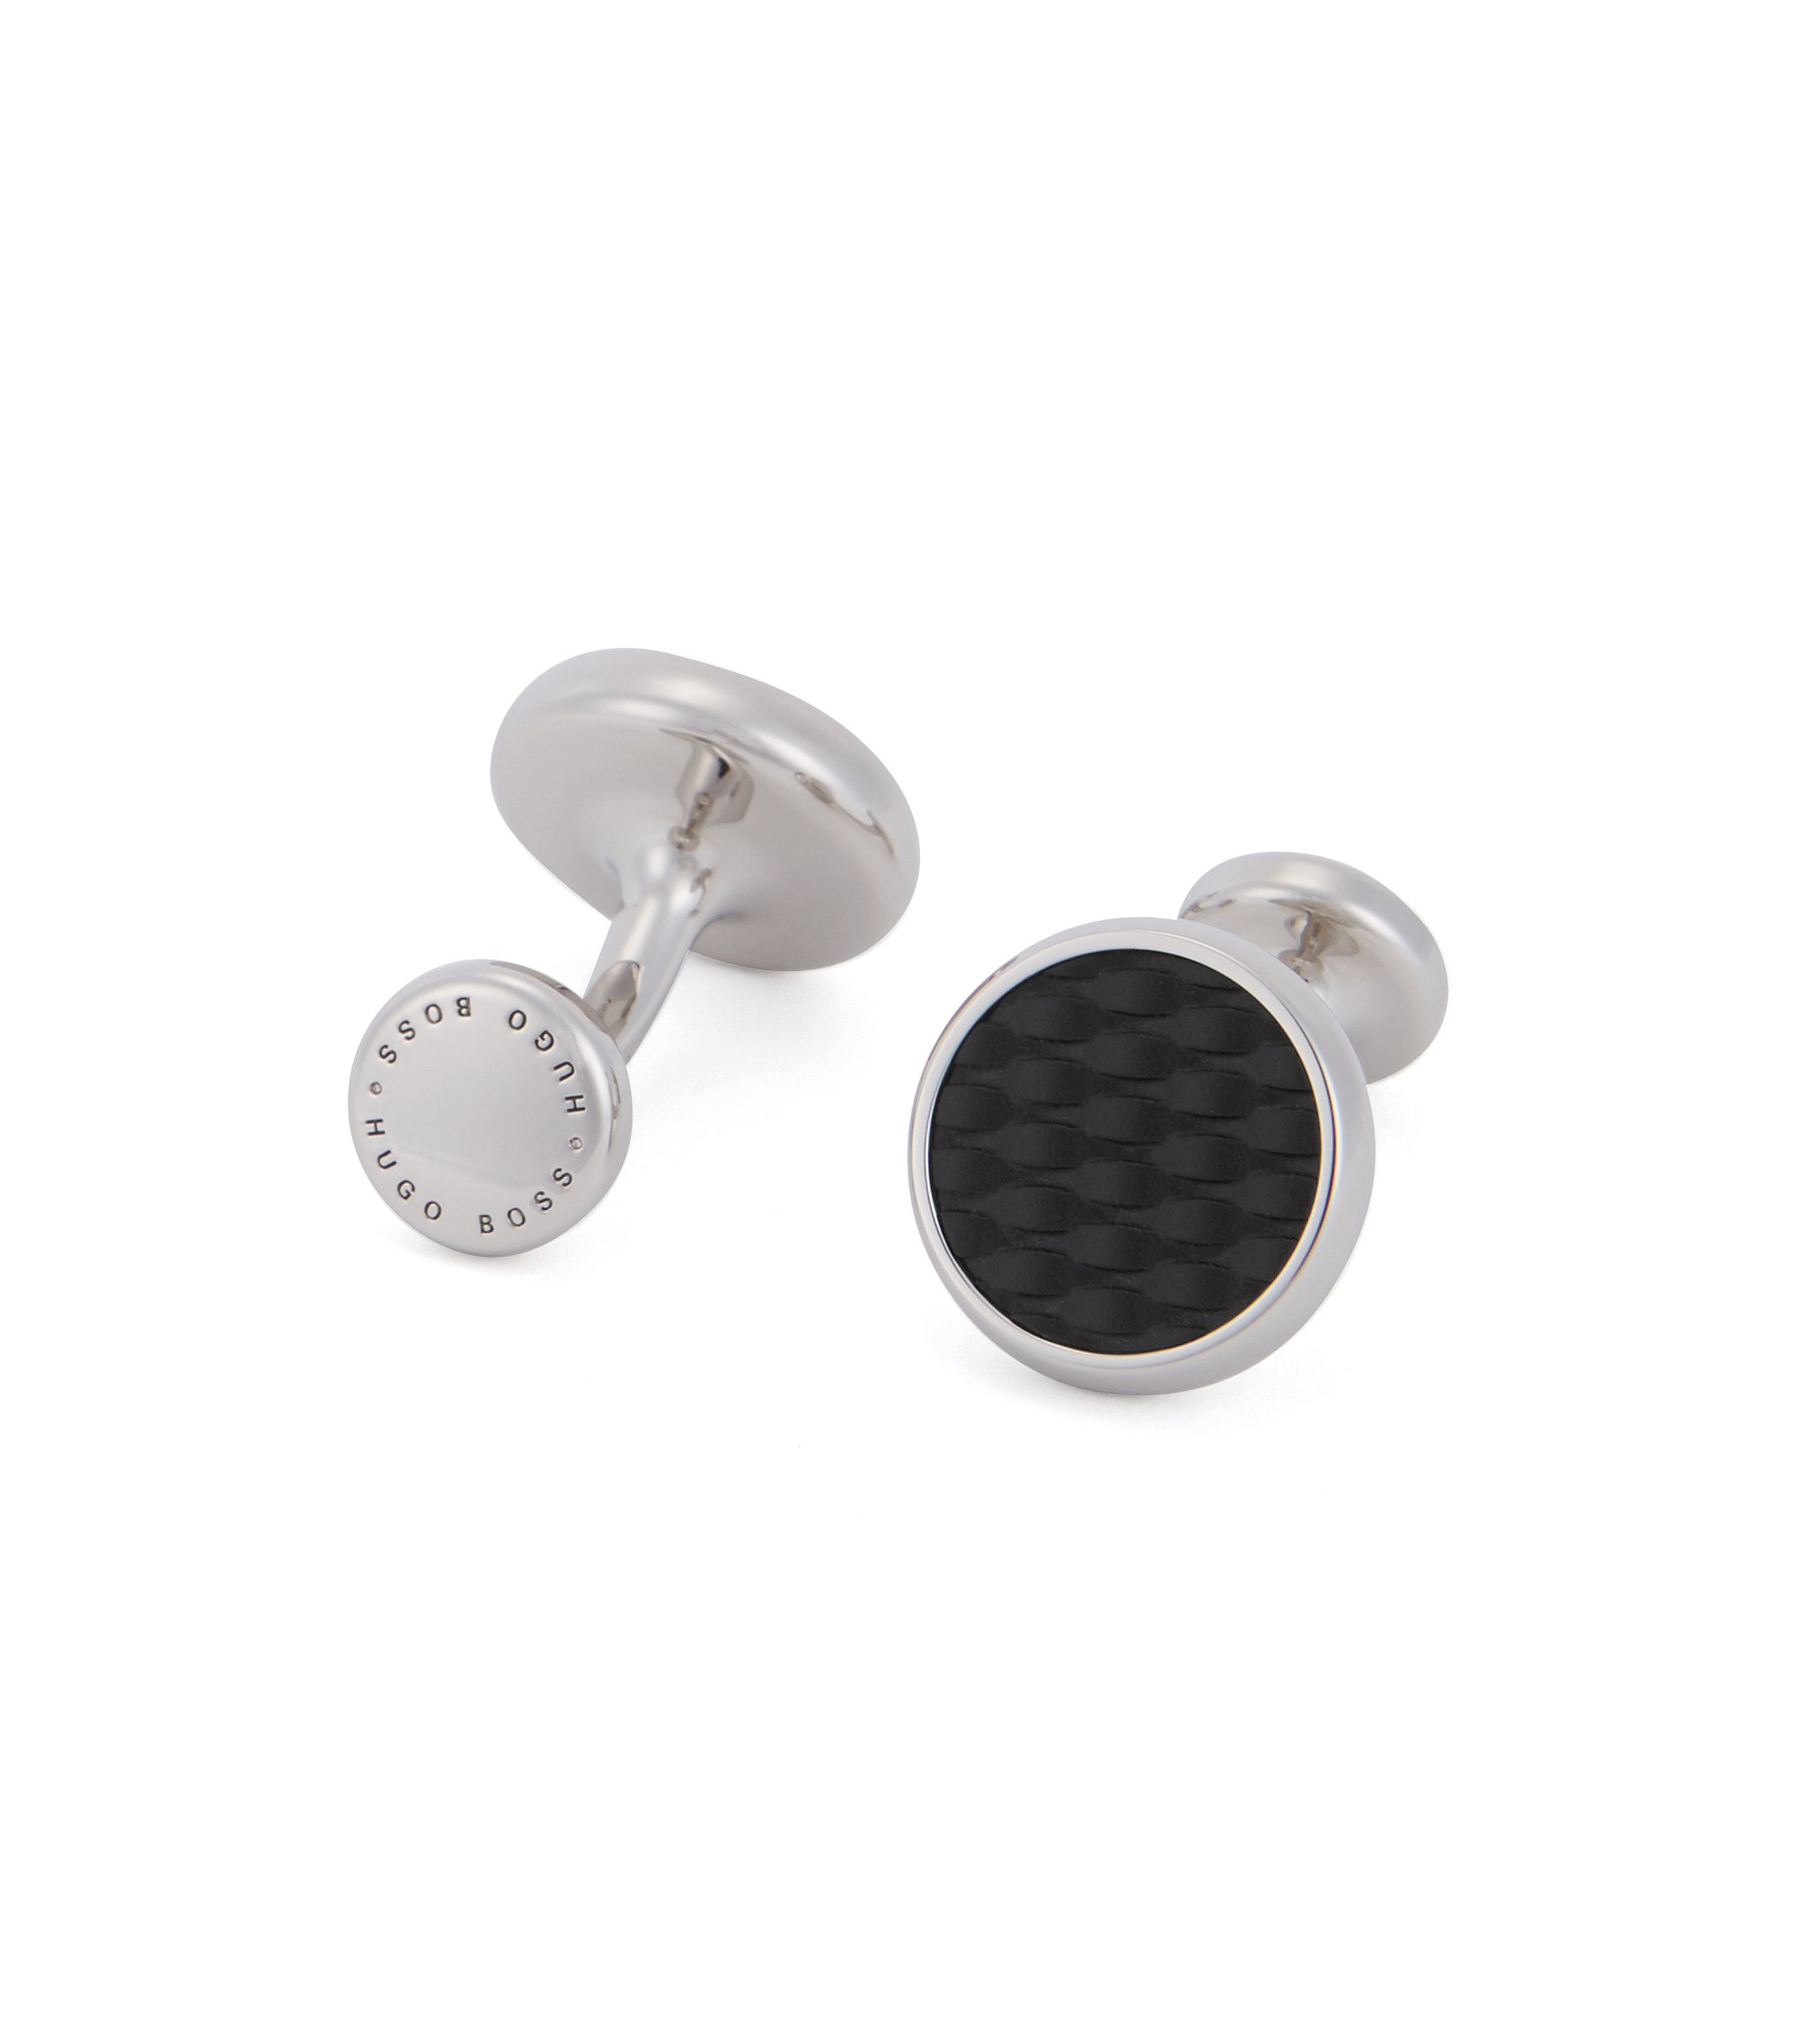 Hand-polished cufflinks with textured enamel inserts, Black